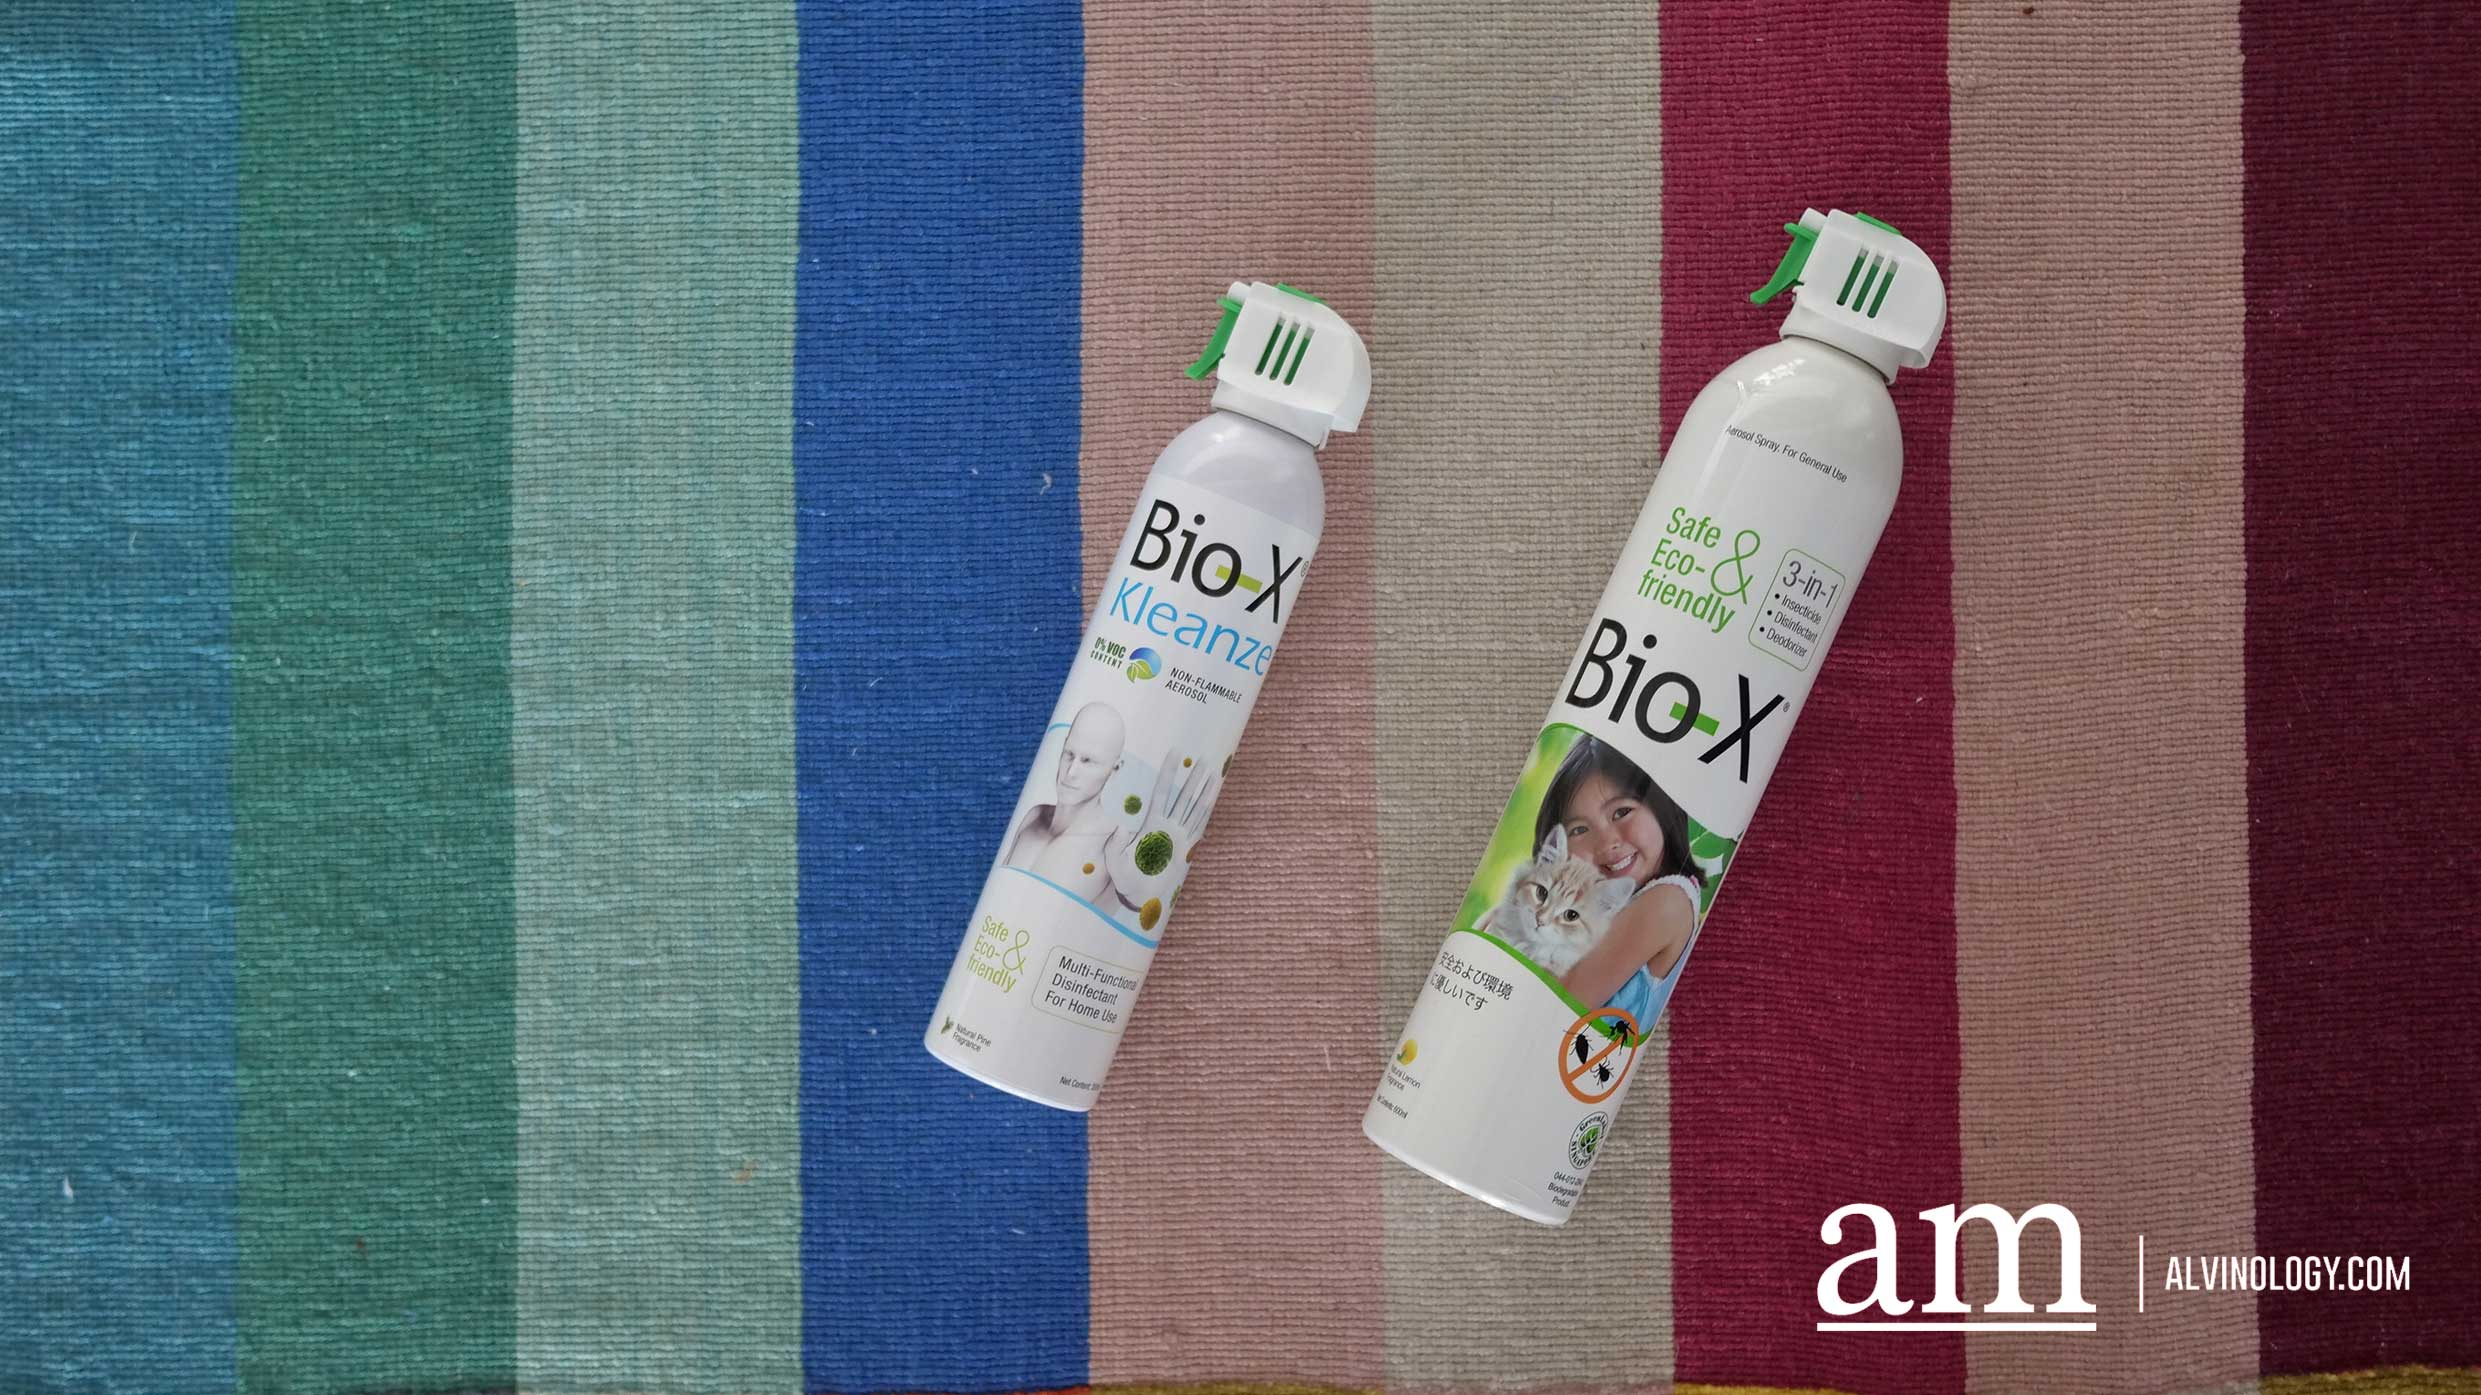 Protect against both Mosquitoes and Viruses with one Spray from Bio-X - Alvinology